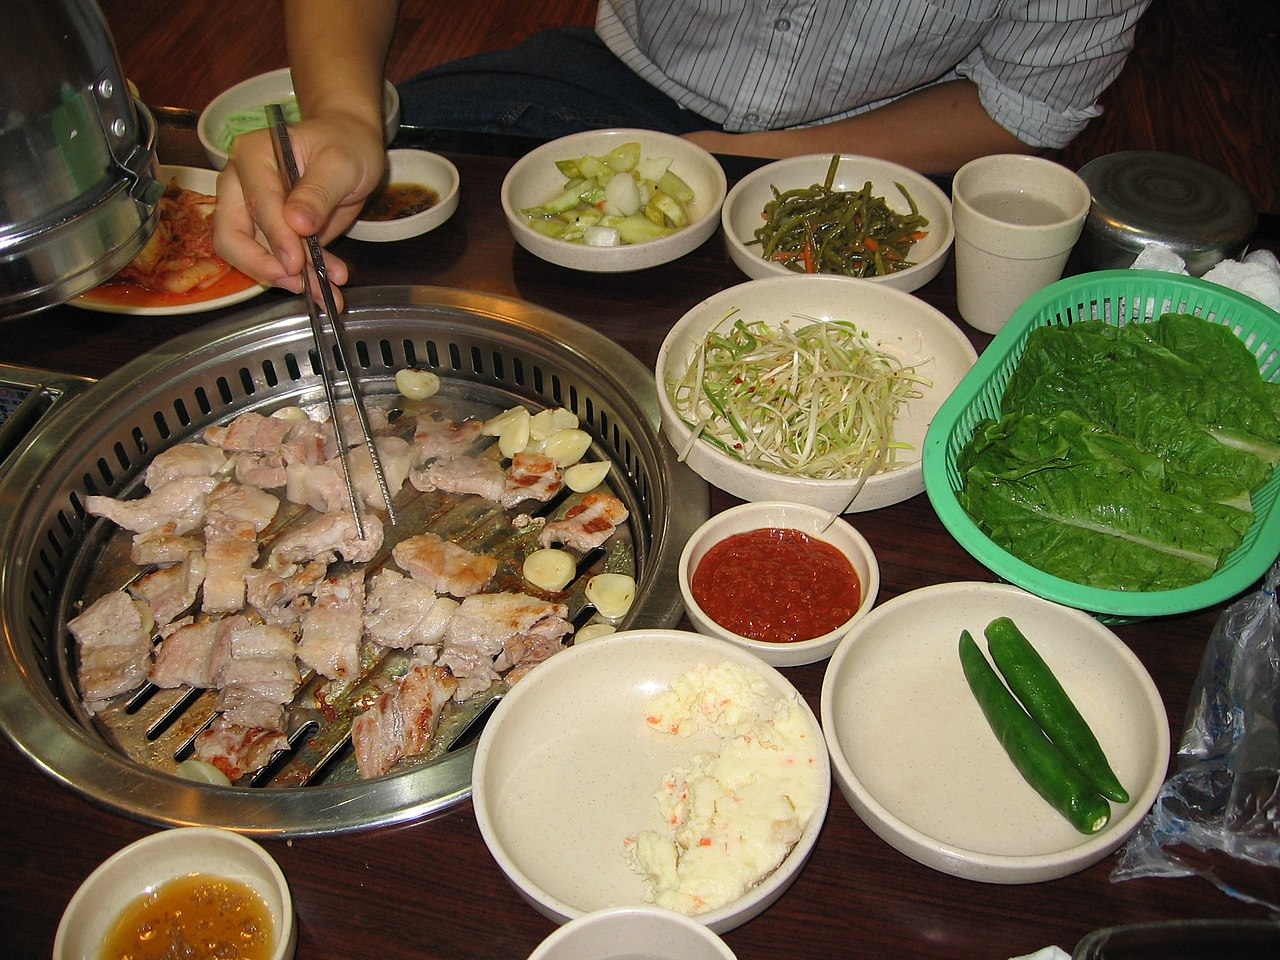 https://upload.wikimedia.org/wikipedia/commons/thumb/2/28/Korean_food_8.jpg/1280px-Korean_food_8.jpg